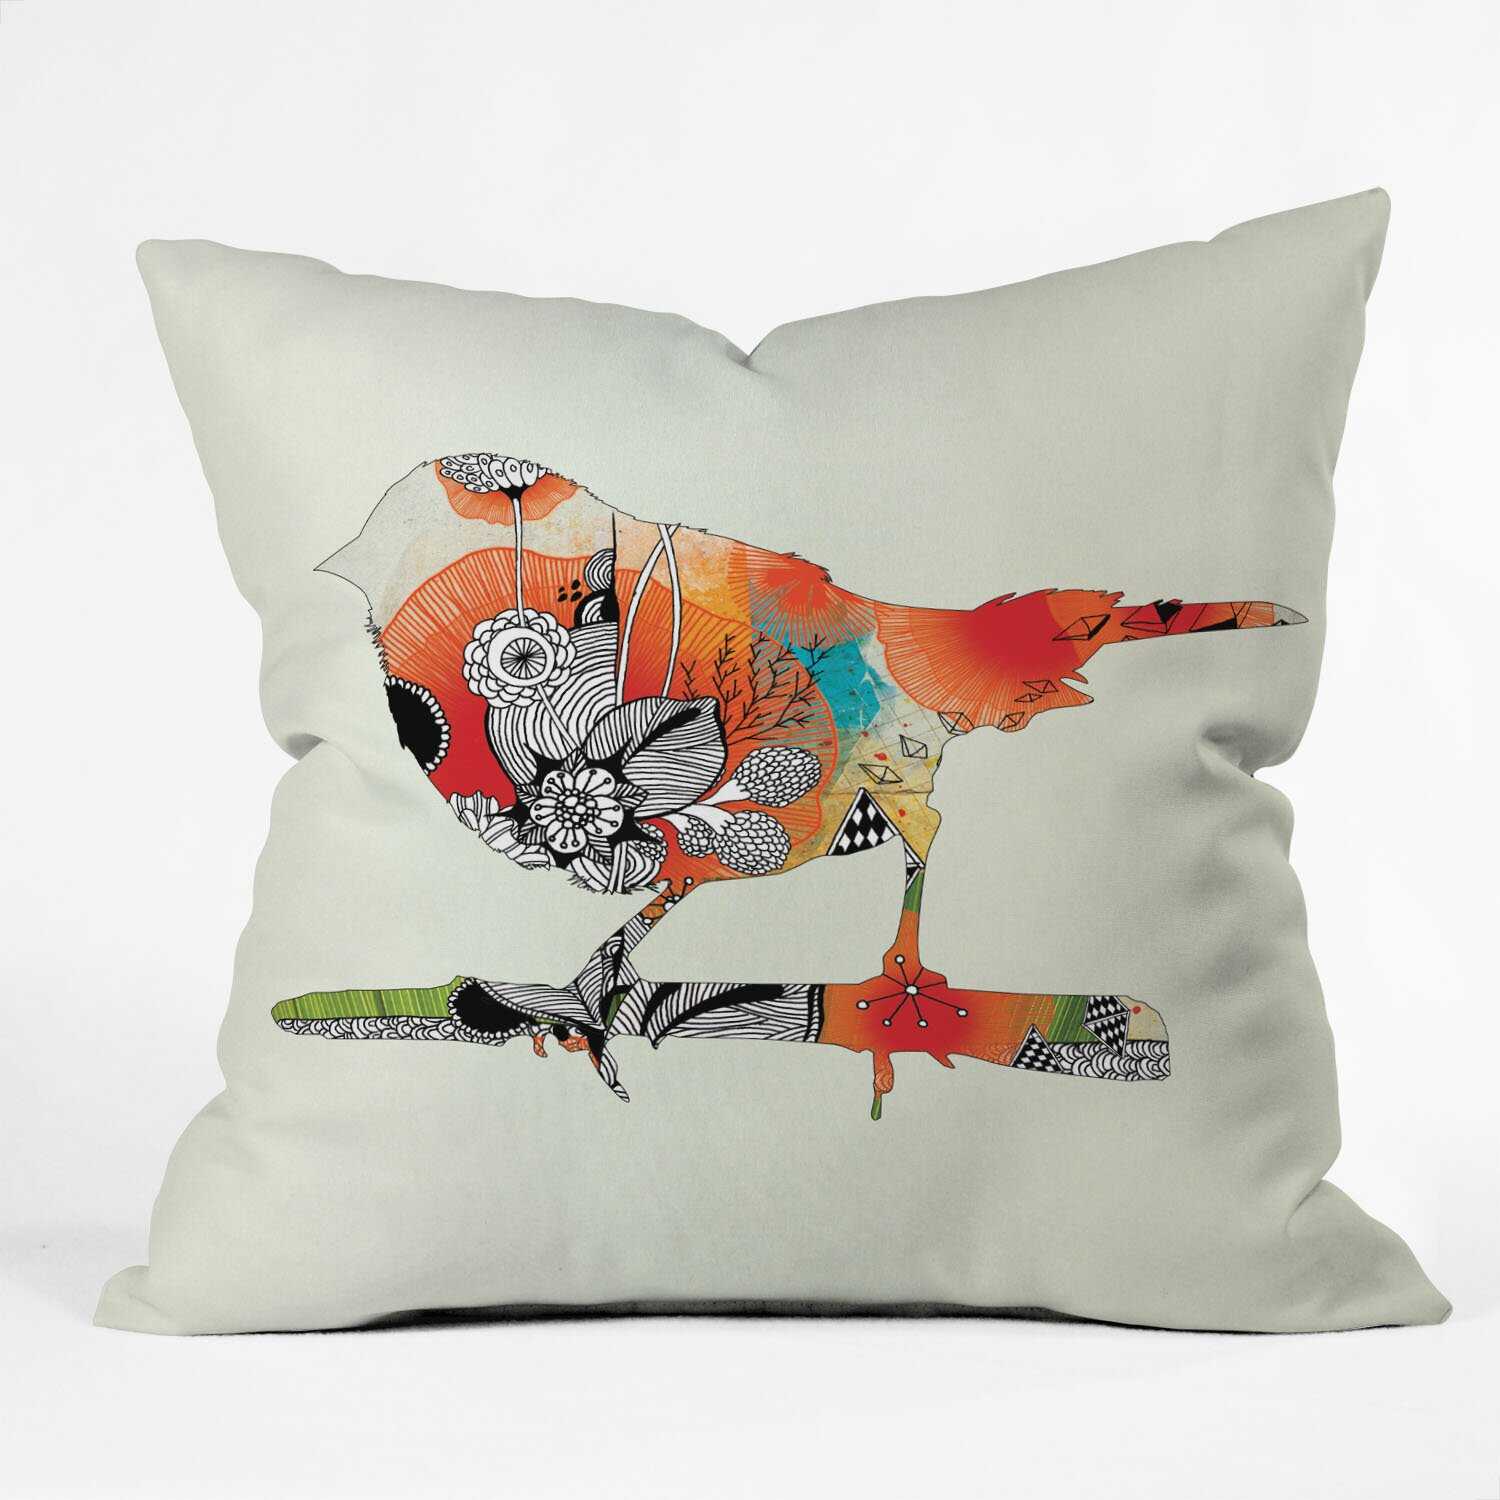 Decorative Pillows With Bird Design : DENY Designs Iveta Abolina Little Bird Throw Pillow & Reviews Wayfair